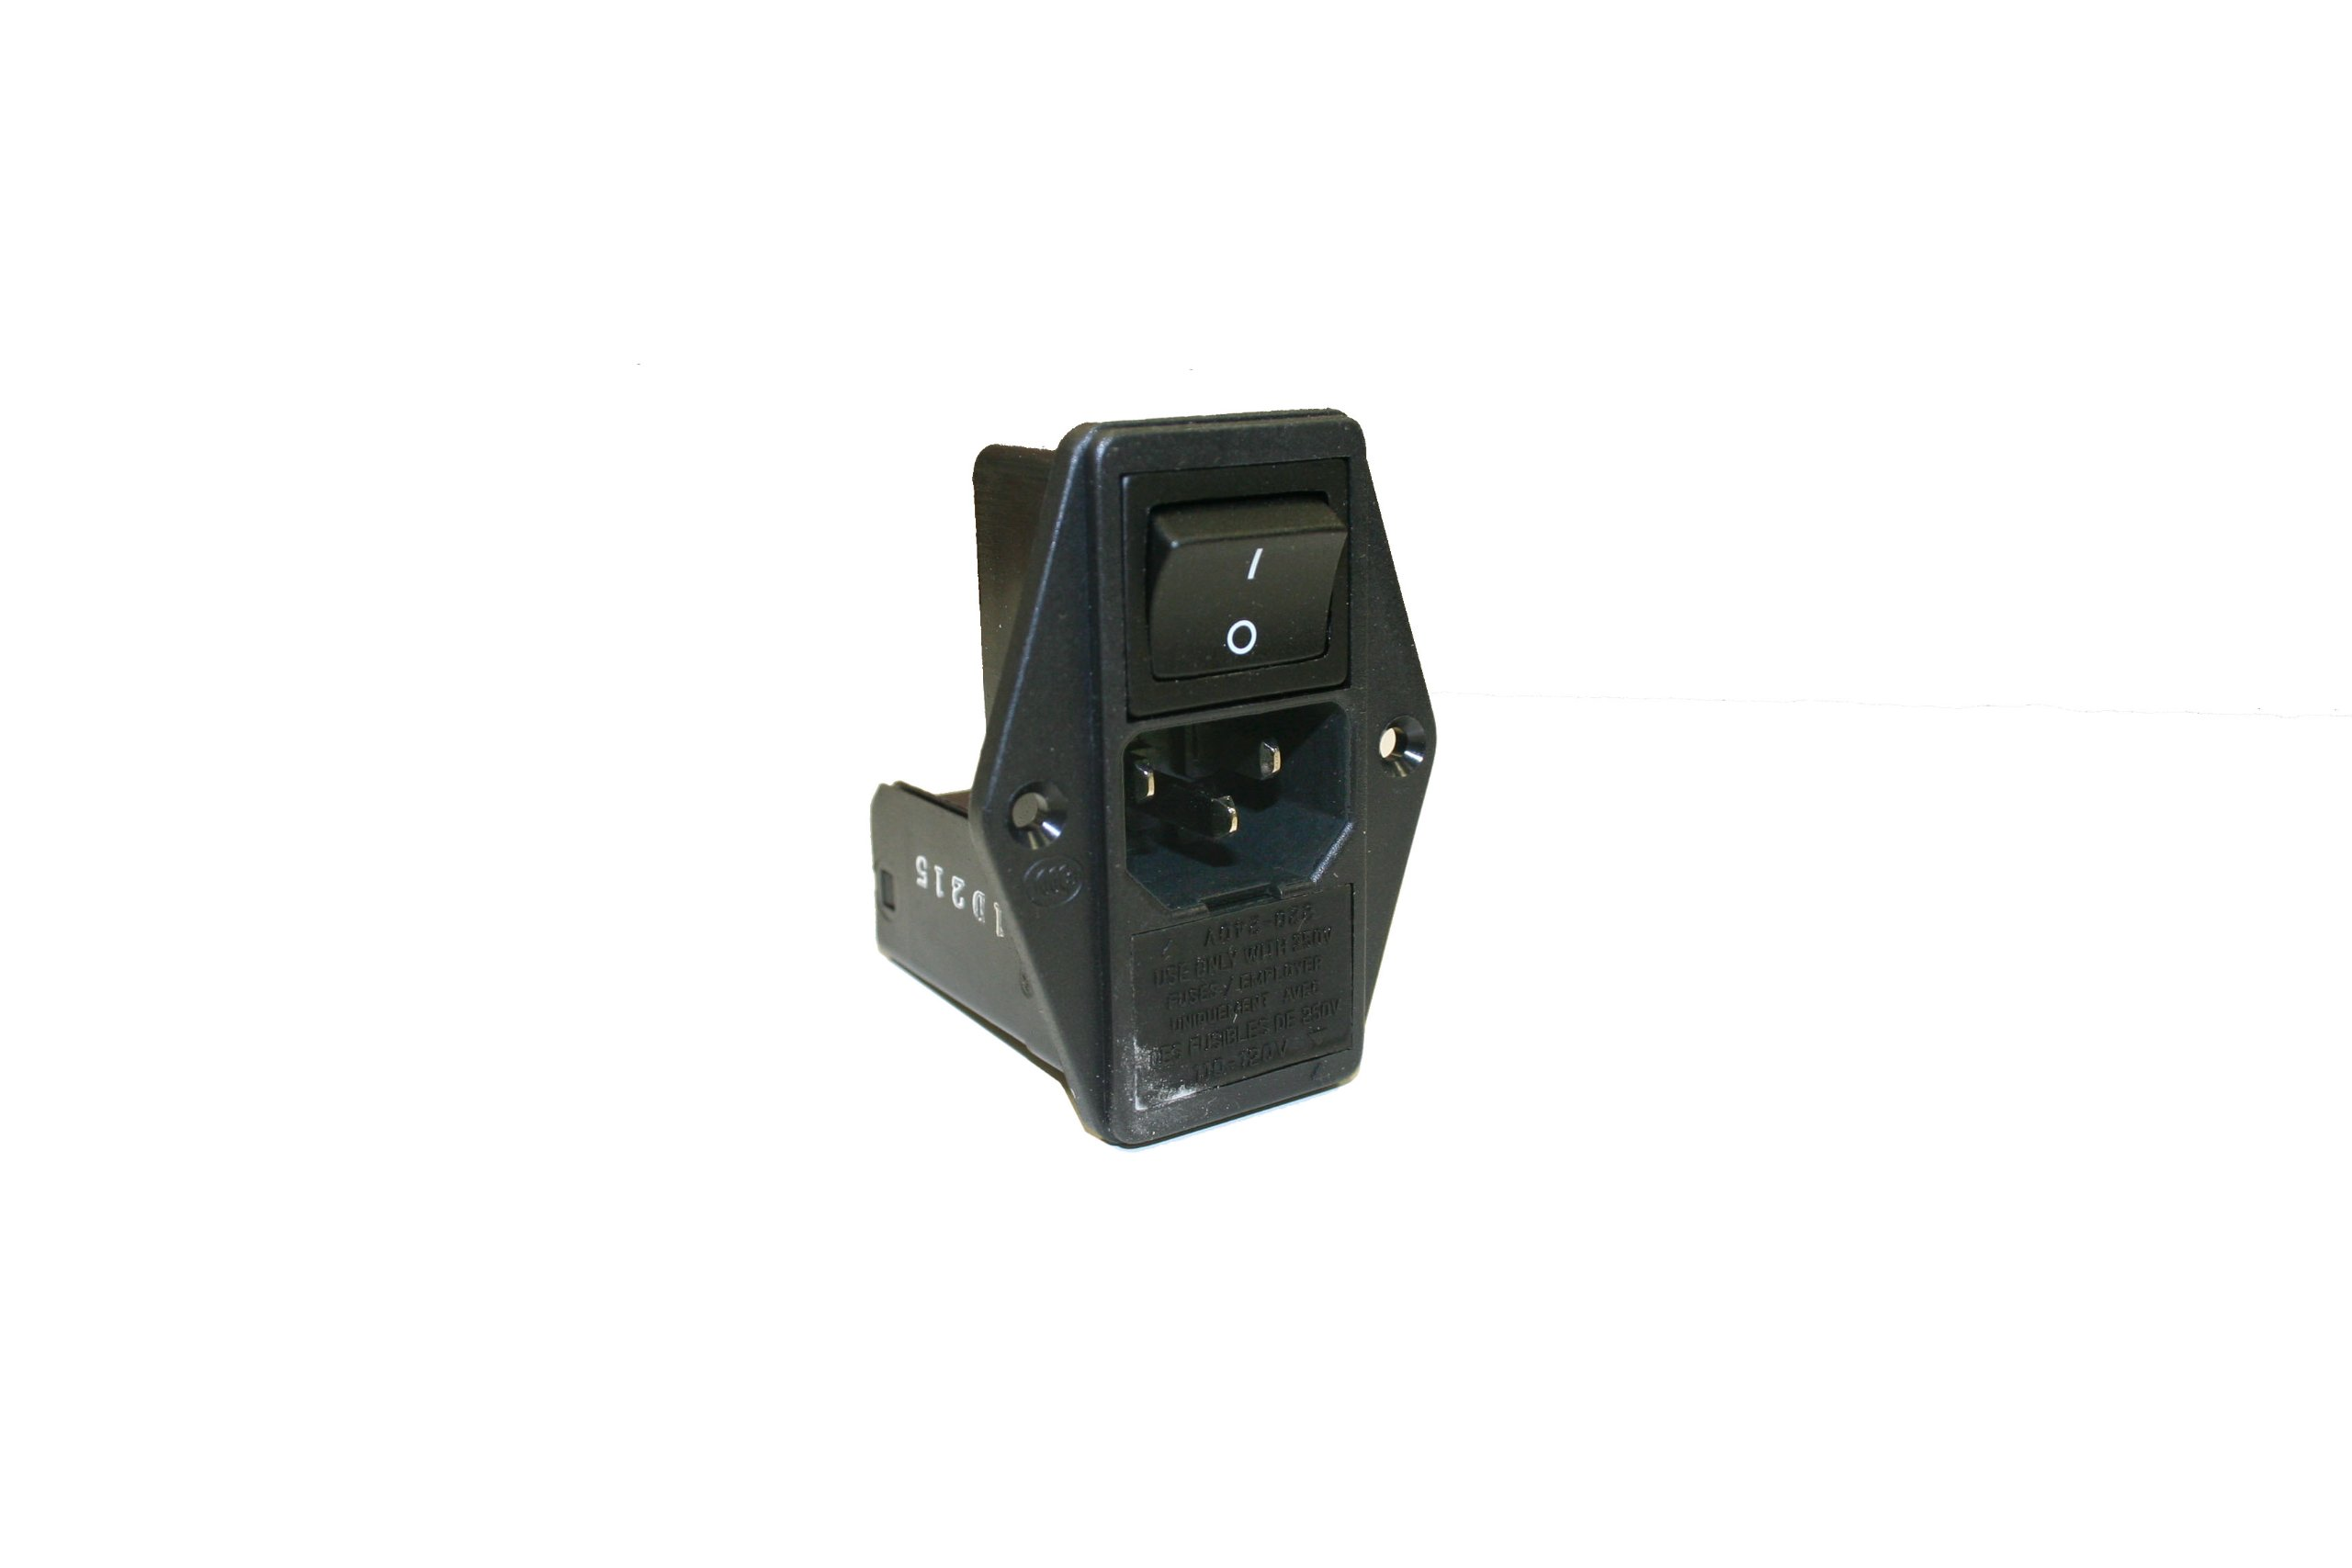 Interpower 83511410 Four Function Power Entry Module, C14 Inlet, Switch, Fuse, Voltage Selector, 10A Current Rating, 250VAC Voltage Rating by Interpower